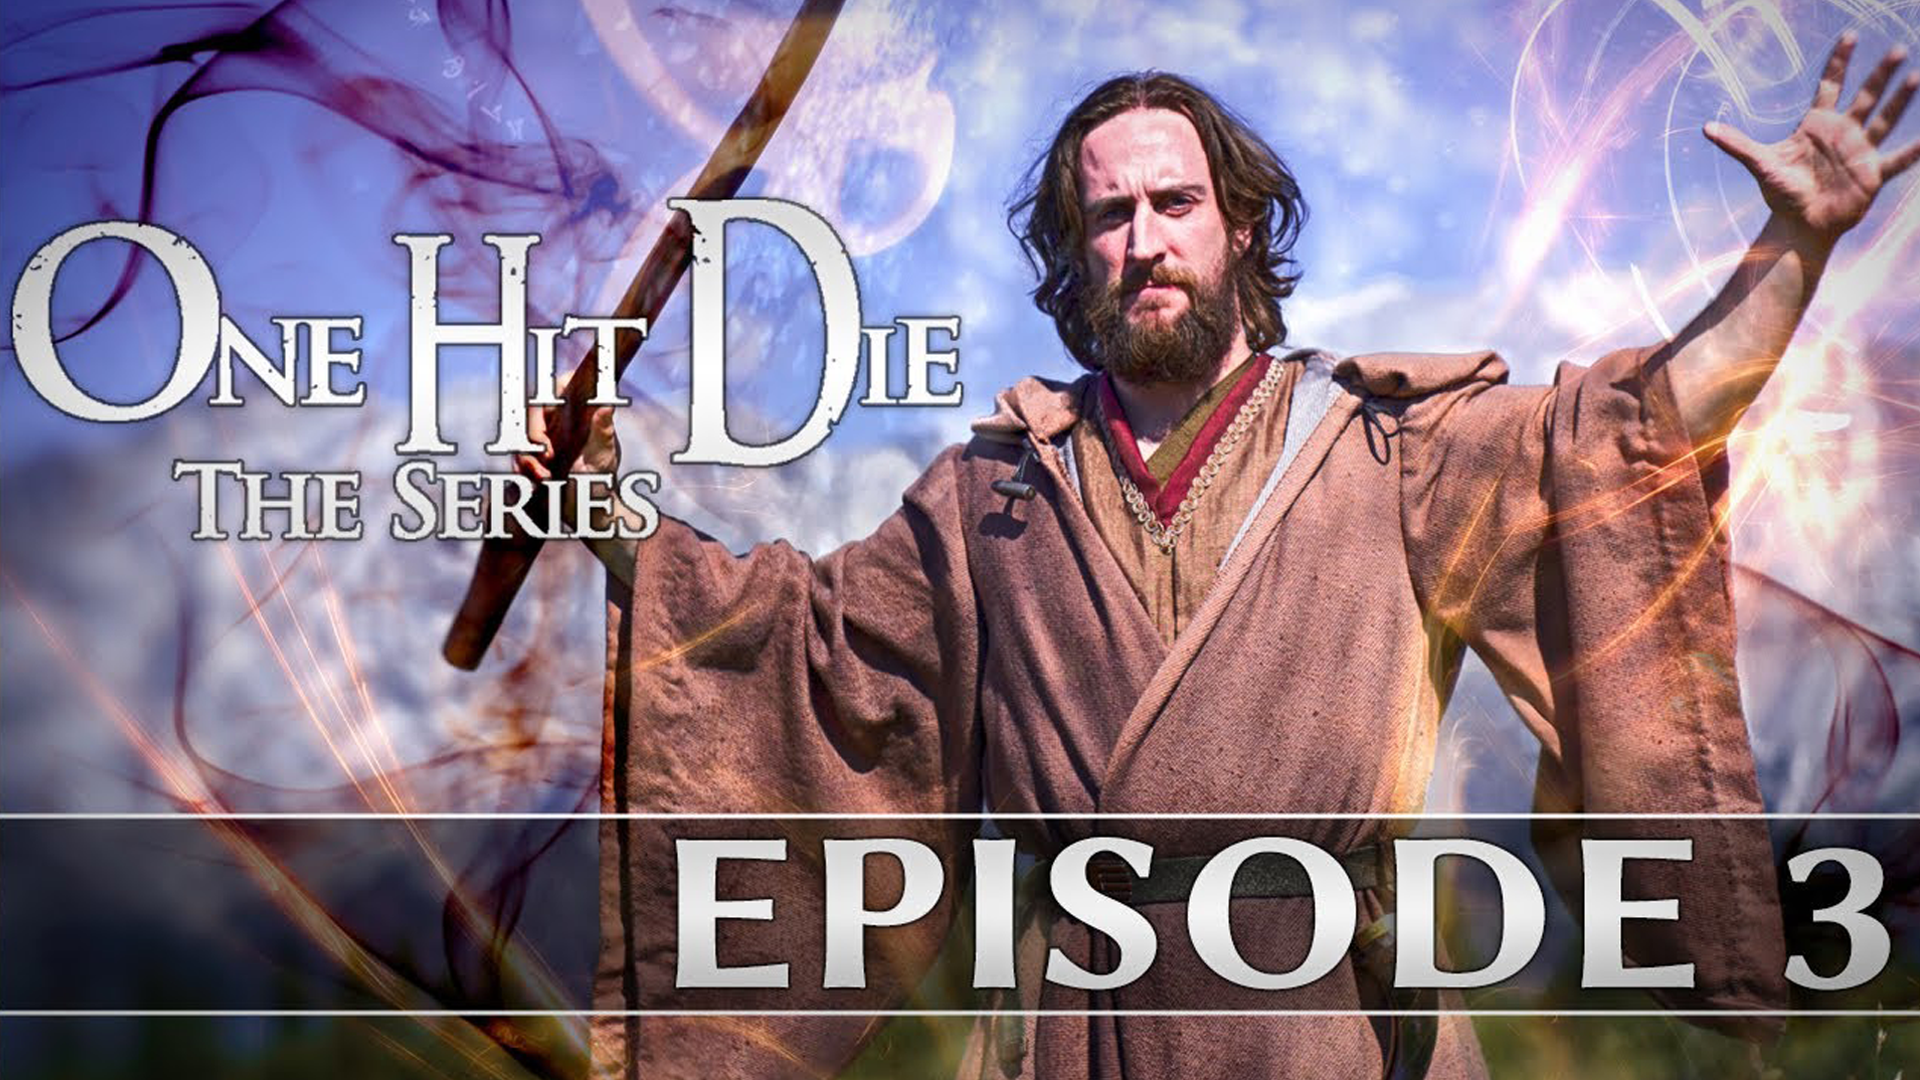 One Hit Die Season 1 Episode 3 Know When to Shut Your Troll Hole